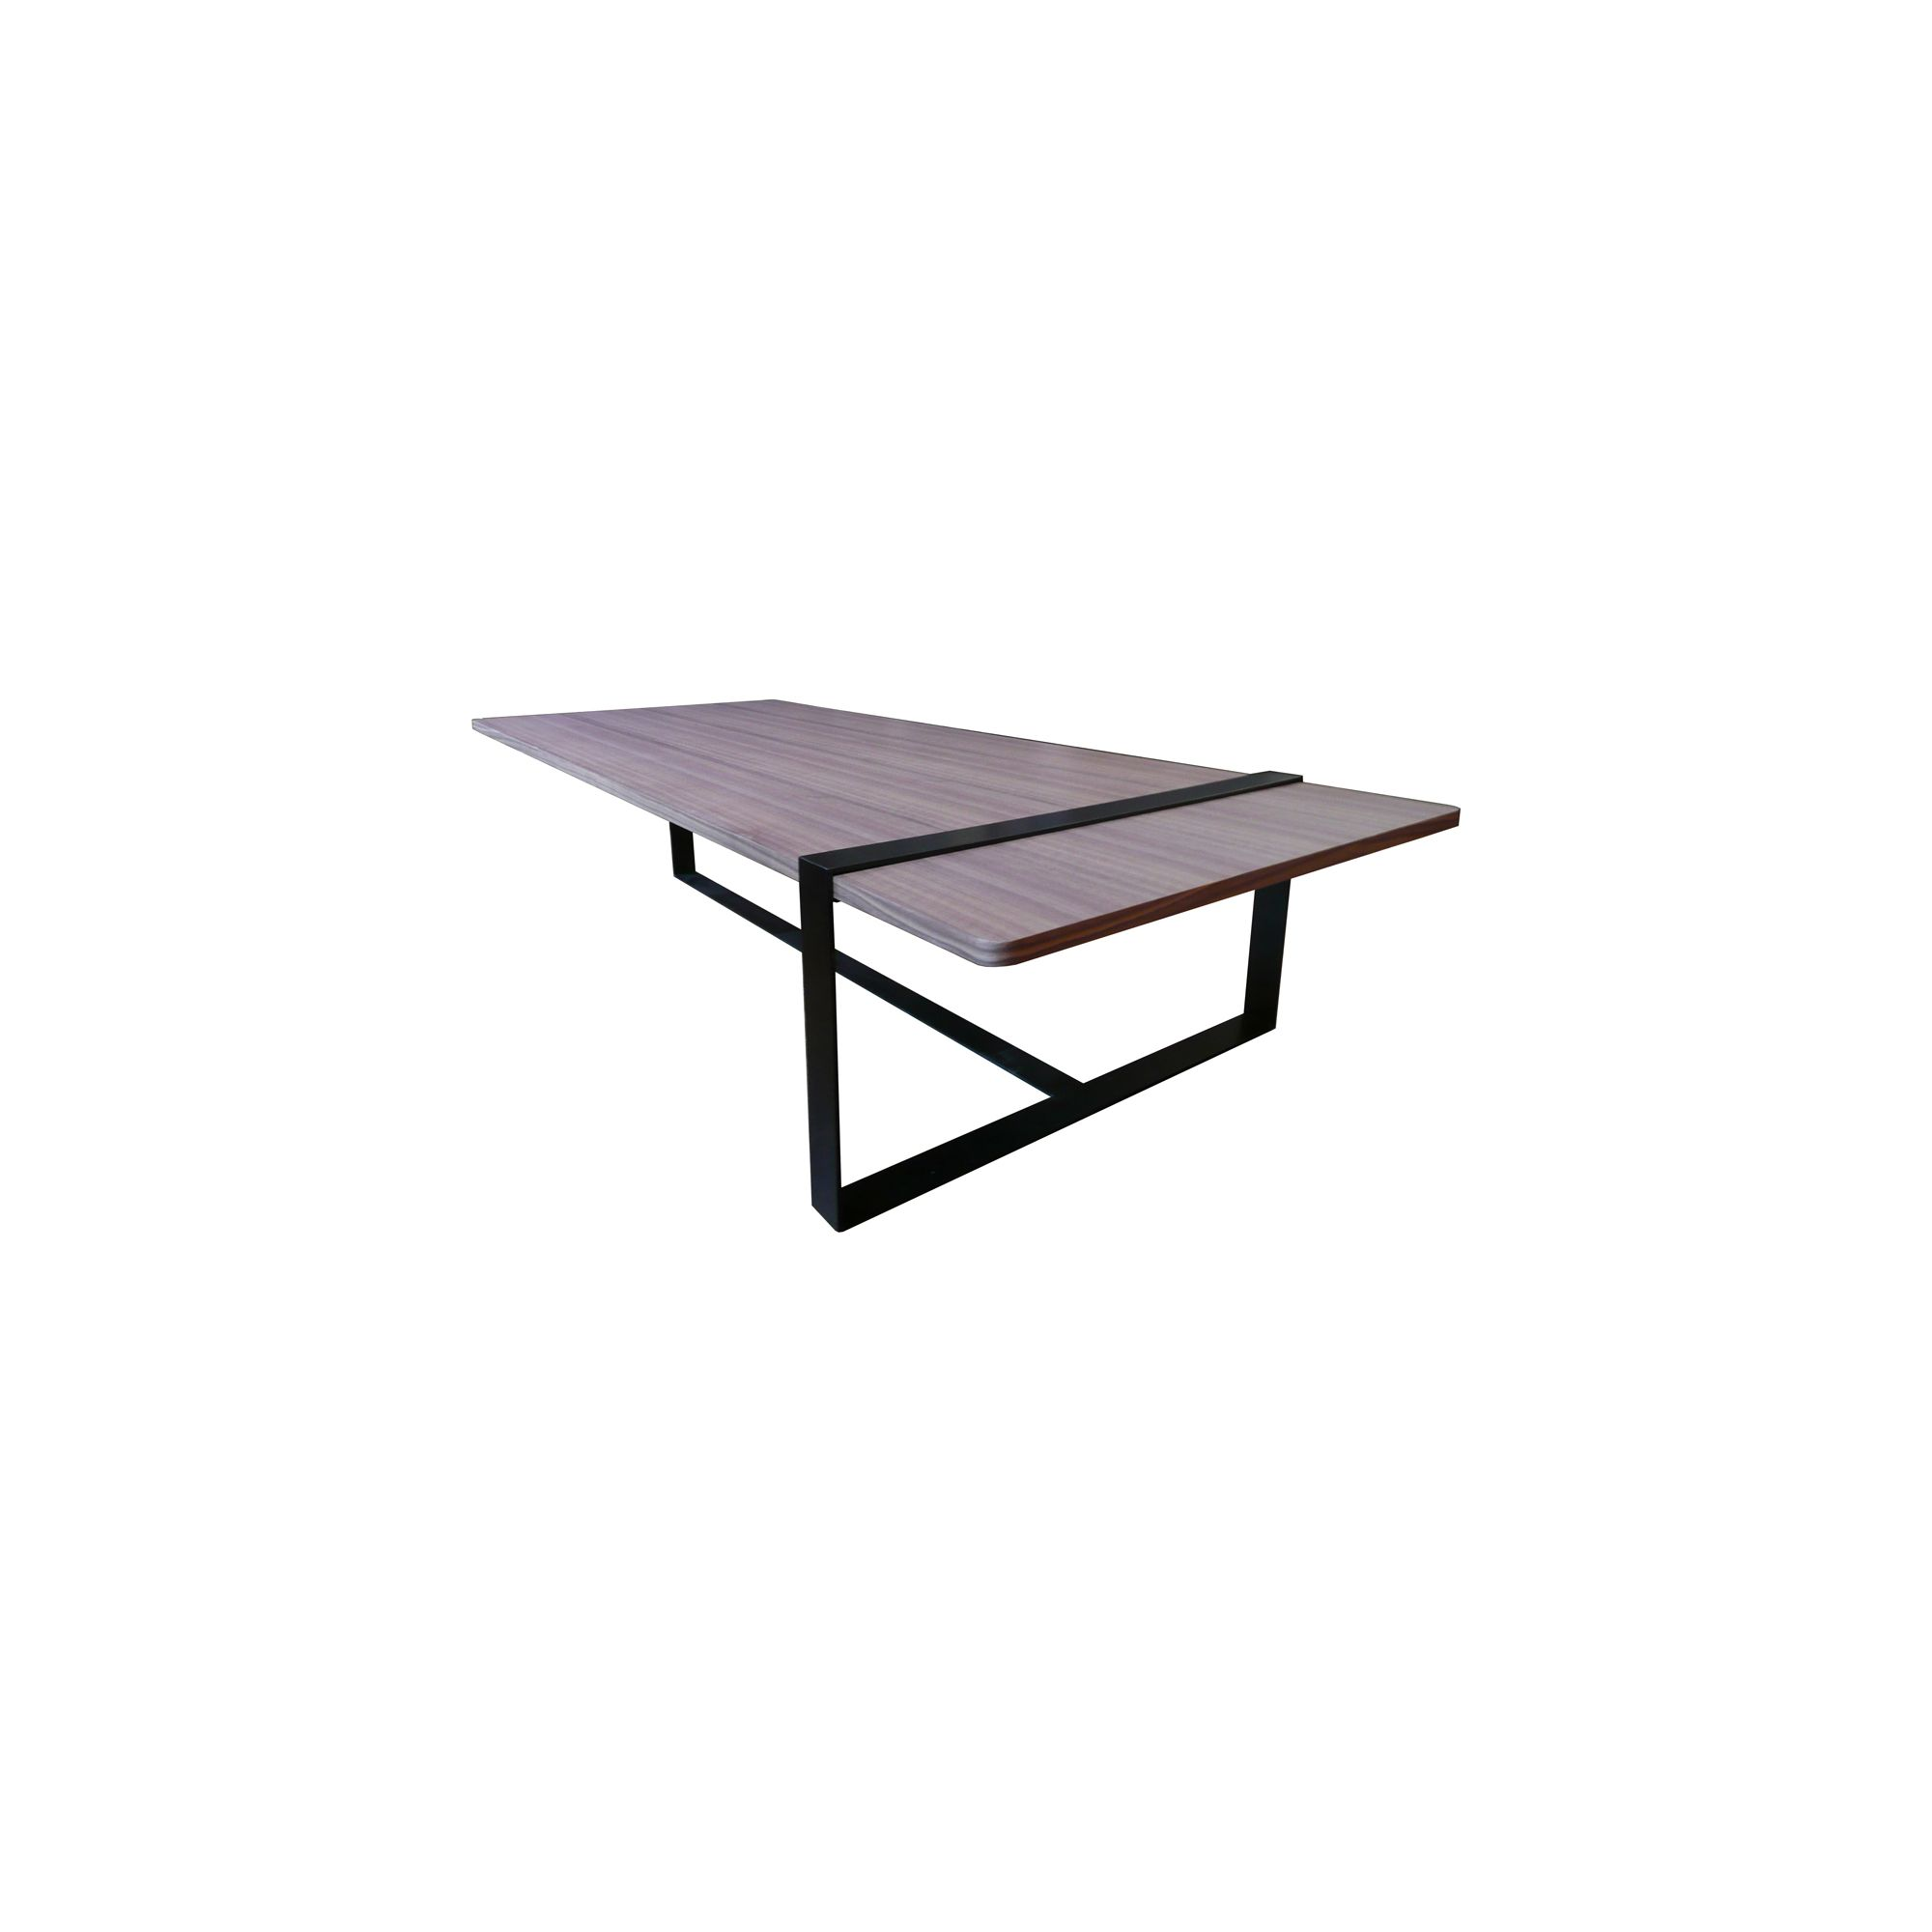 Alex de Rouvray Severin Wood Top Coffee Table at Tesco Direct